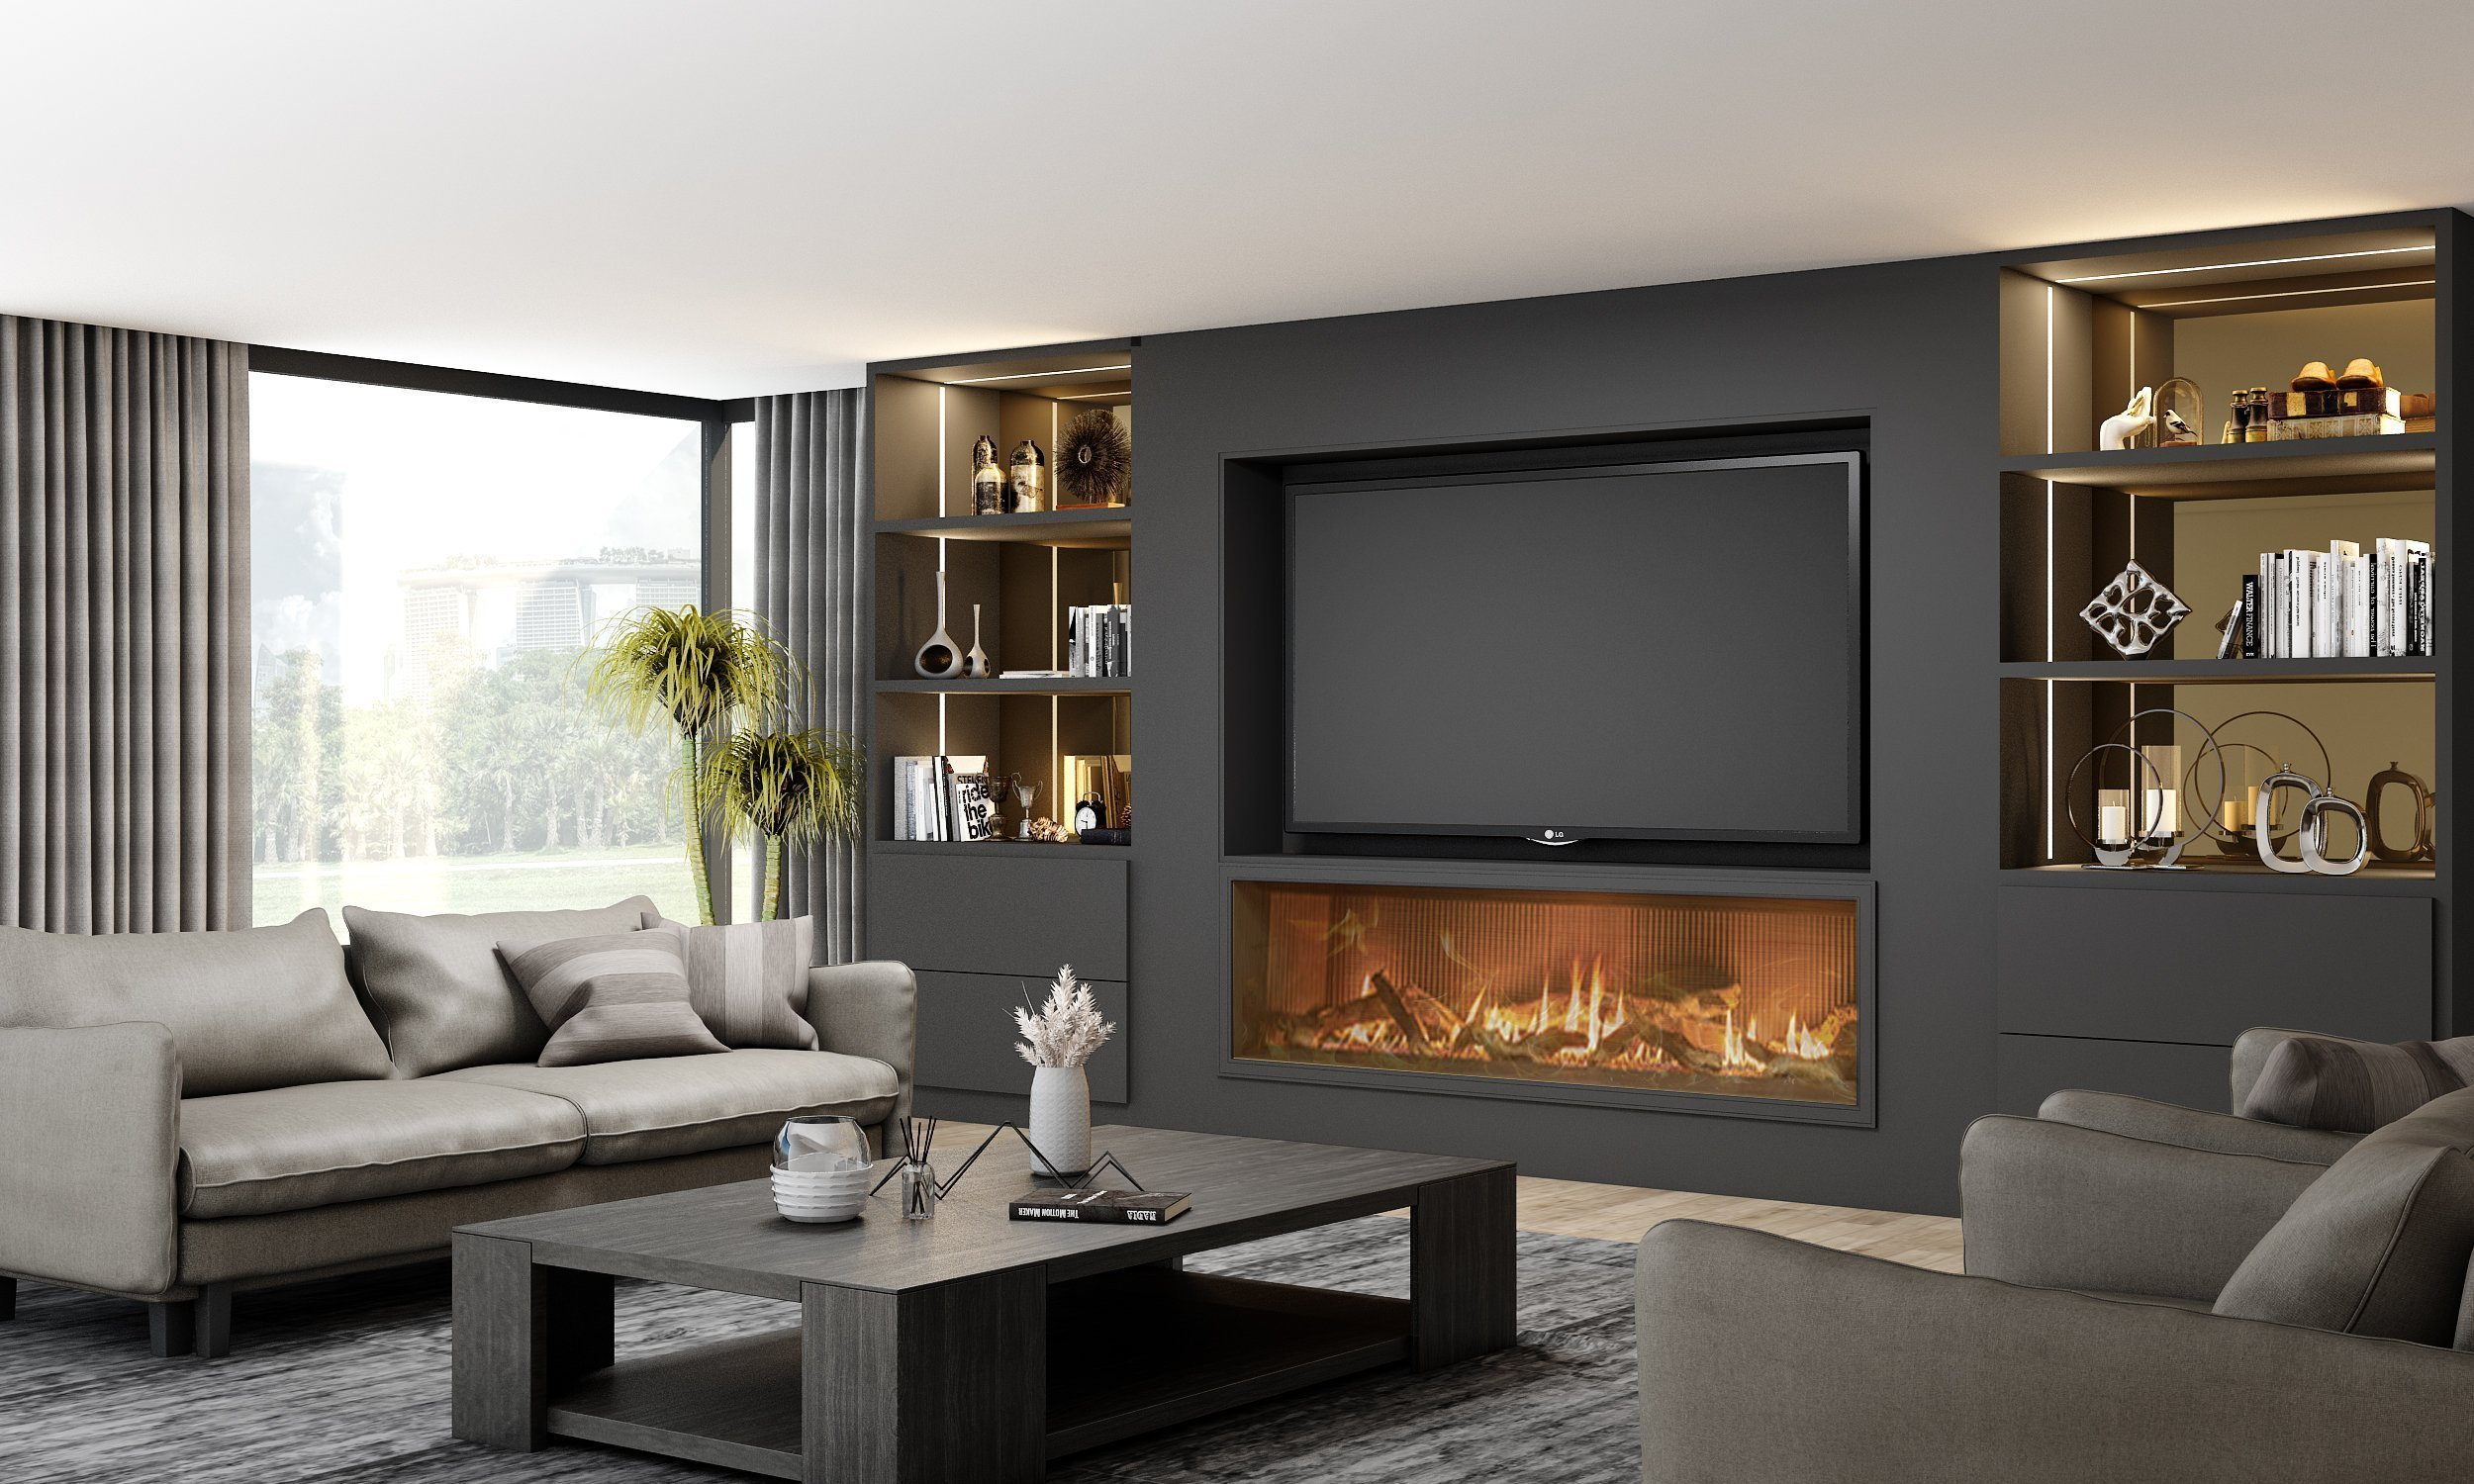 Matt Bespoke Fitted TV unit with storage and fireplace finished in Black Matt and Tinted Bronze glass